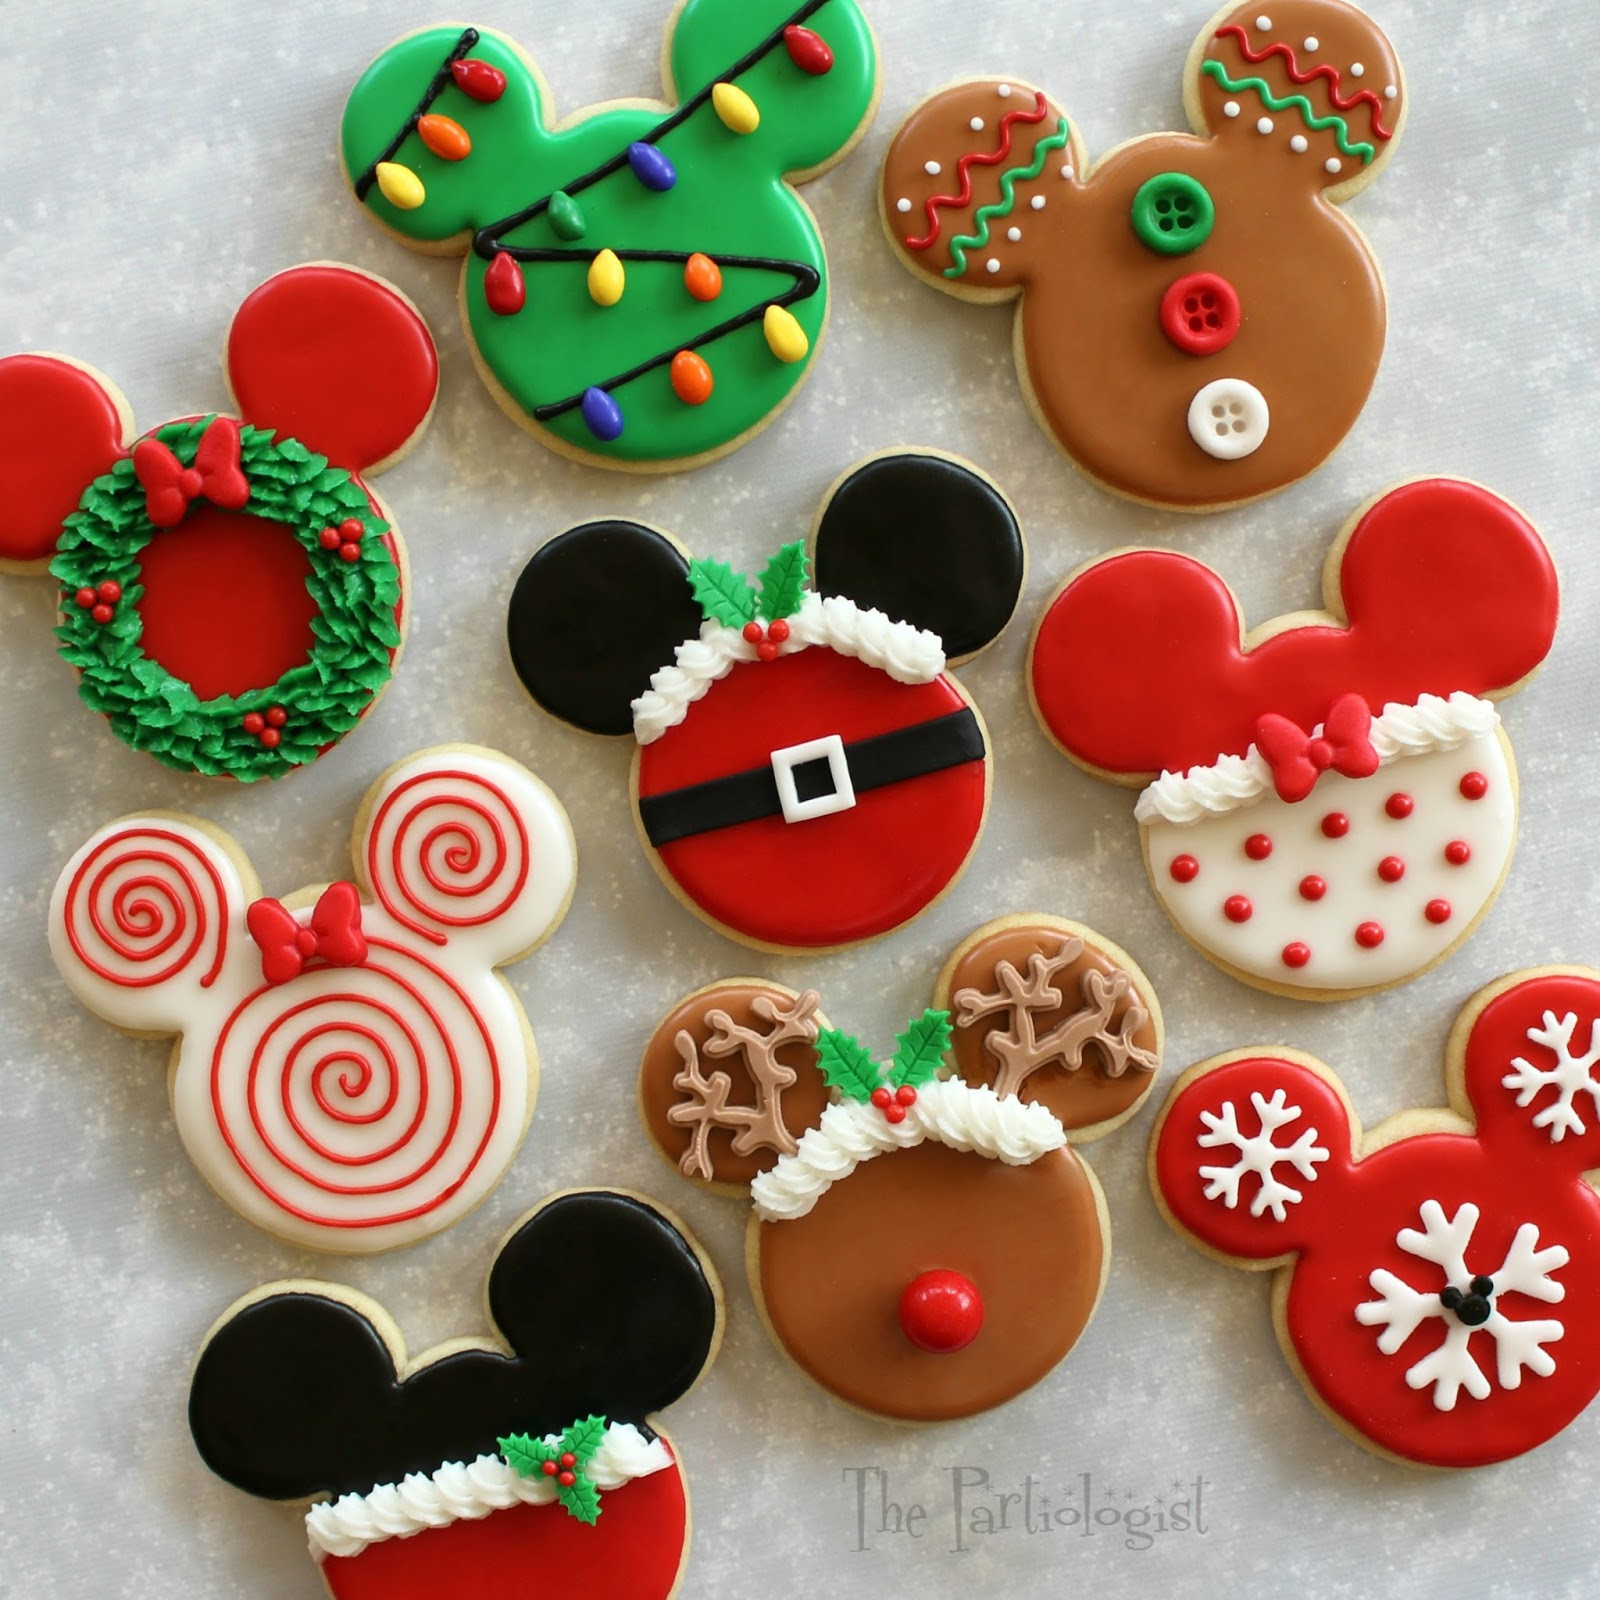 Christmas Themed Cookies  The Partiologist Disney Themed Christmas Cookies